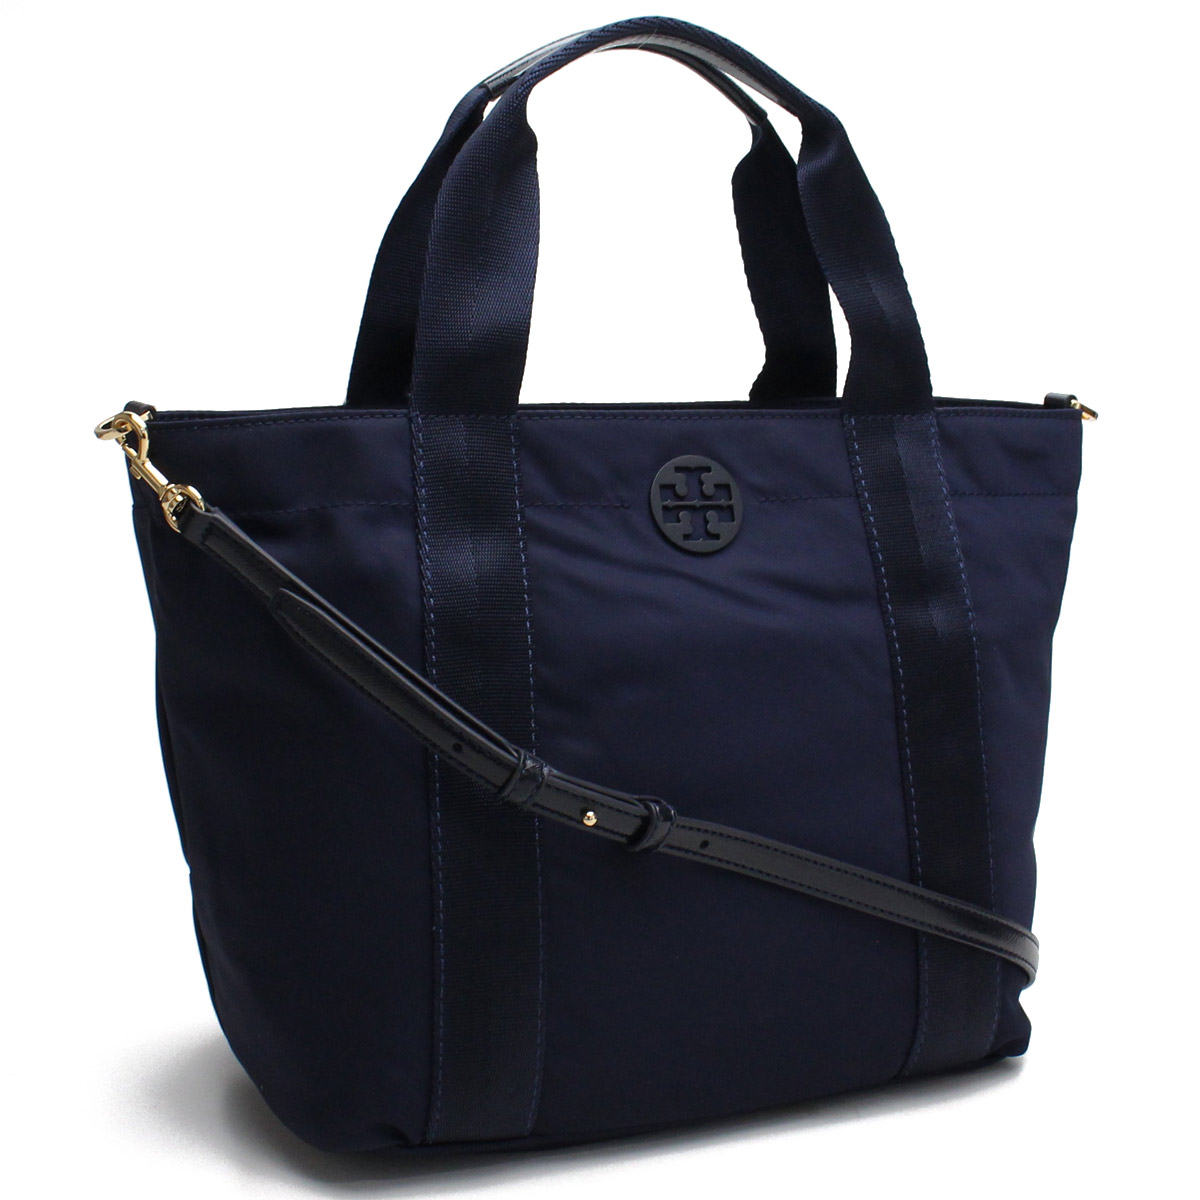 7fa0b4d1e Bighit The total brand wholesale: Tolly Birch TORY BURCH bag QUINN Quinn  Small nylon tote bag 41762 405 TORY NAVY navy system | Rakuten Global Market